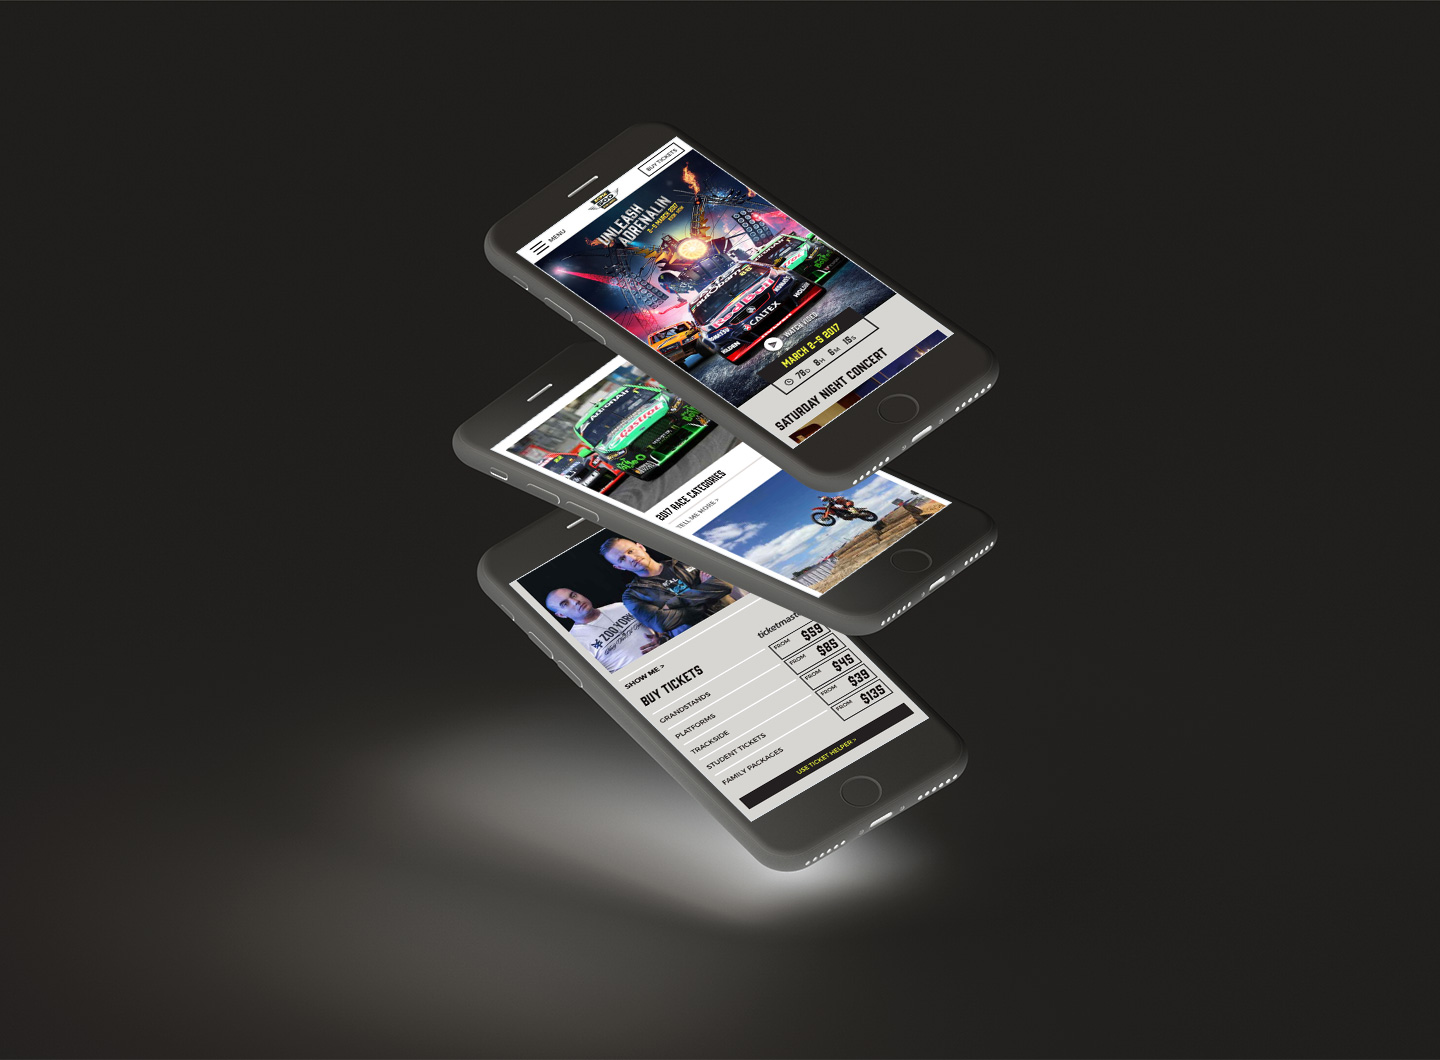 A stack of iPhones showing the Adelaide 500 website design